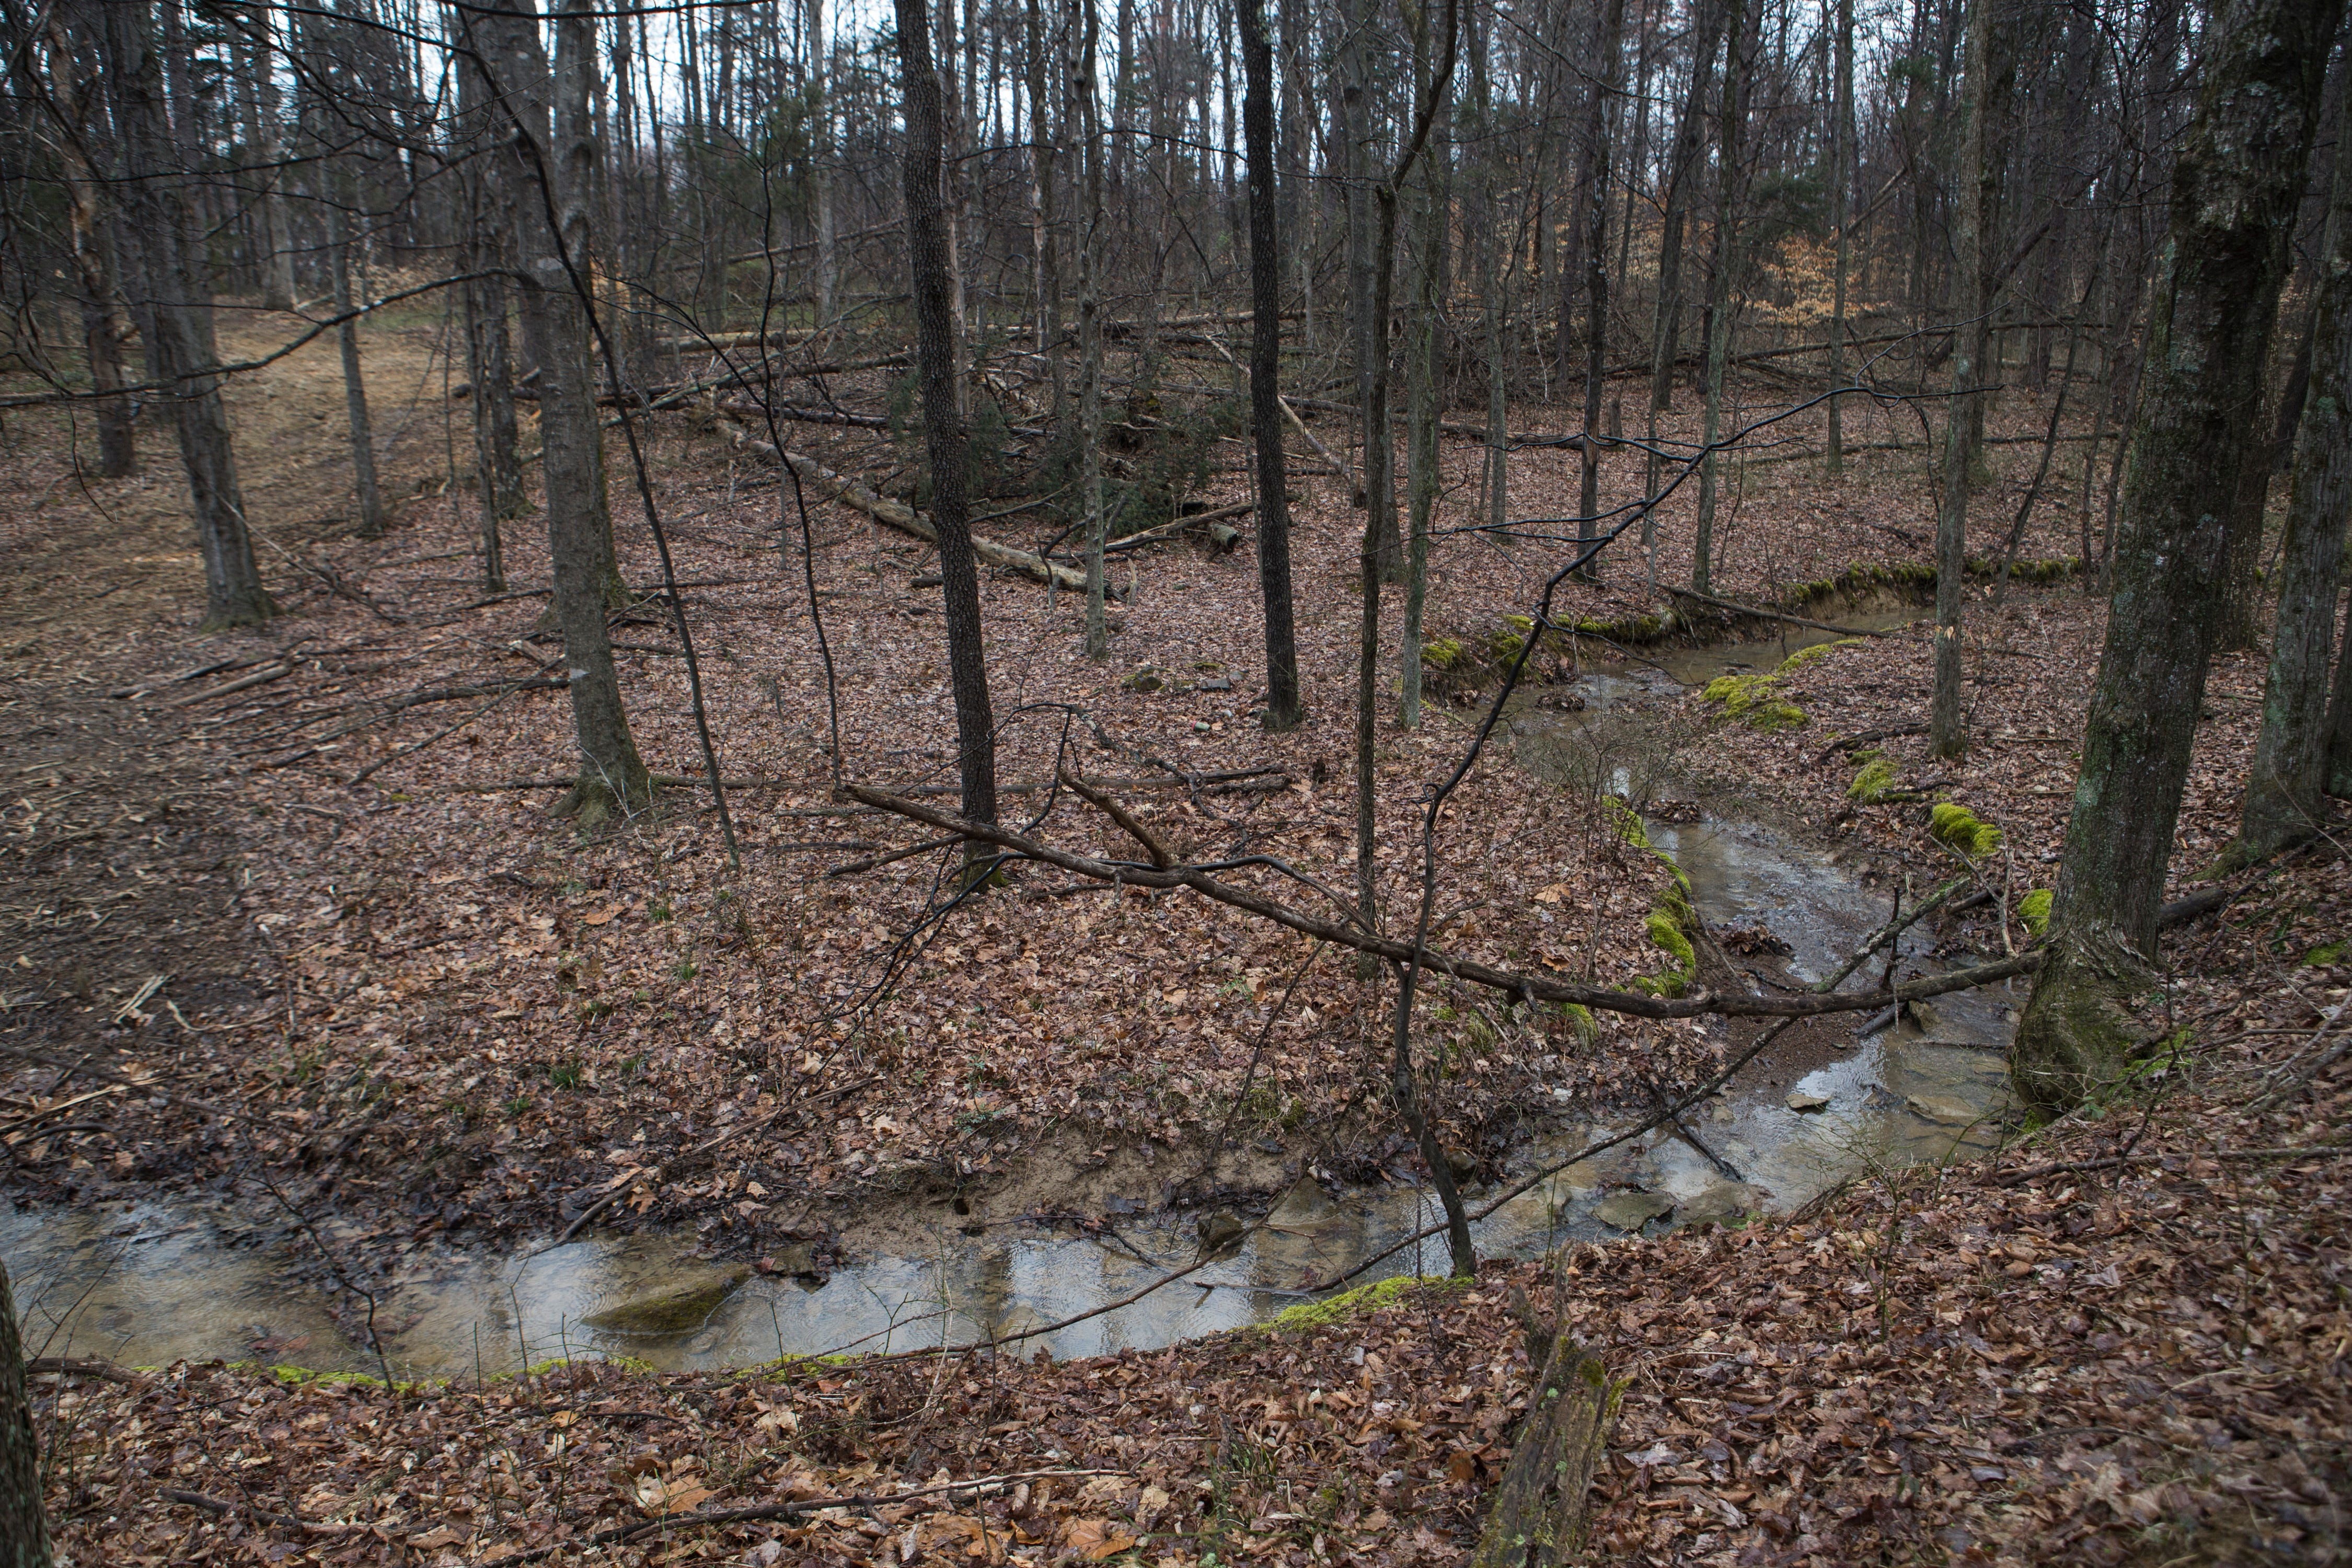 Bernheim Forest makes major land acquisition to protect bats